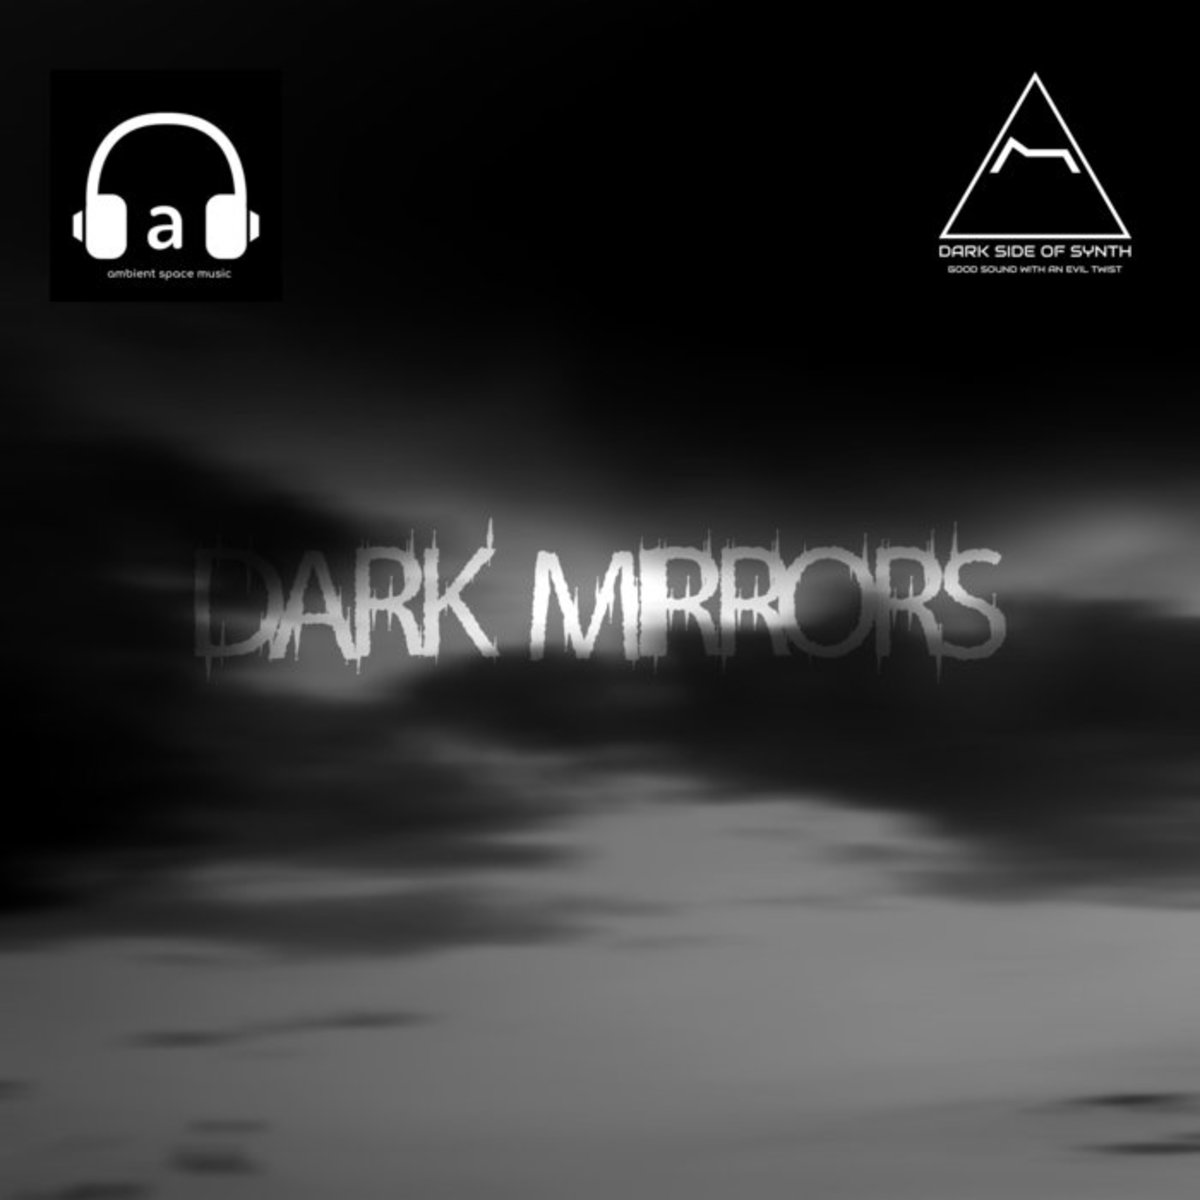 synth-album-review-andrew-ambient-the-dark-side-of-synth-dark-mirrors